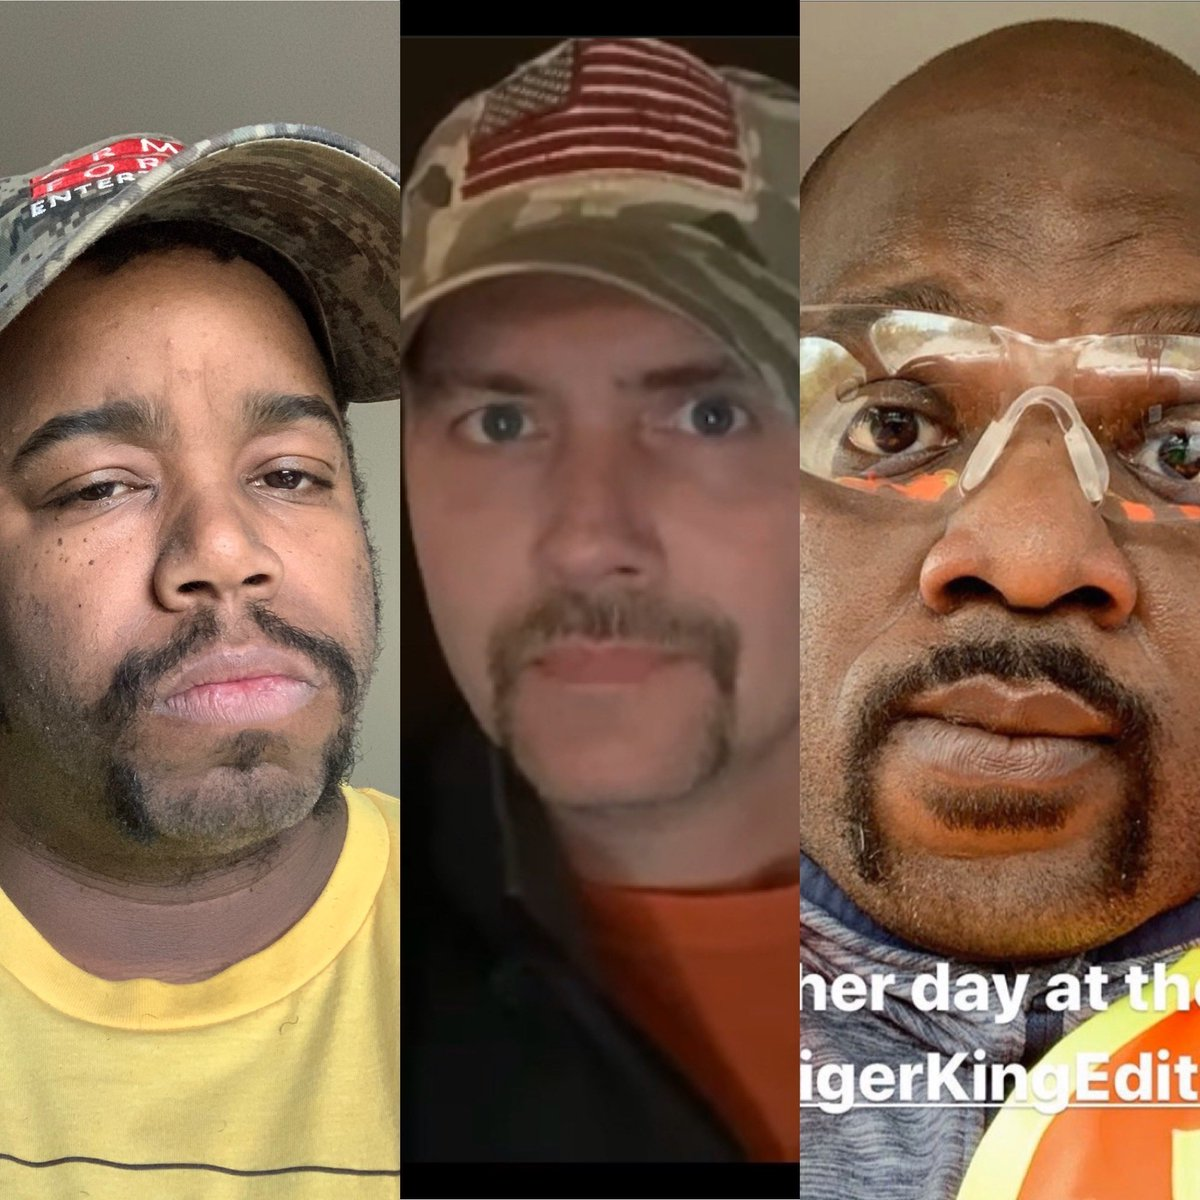 My ultra cool 'stache is finally trending! Cmon America, we can do this! @keiostroud